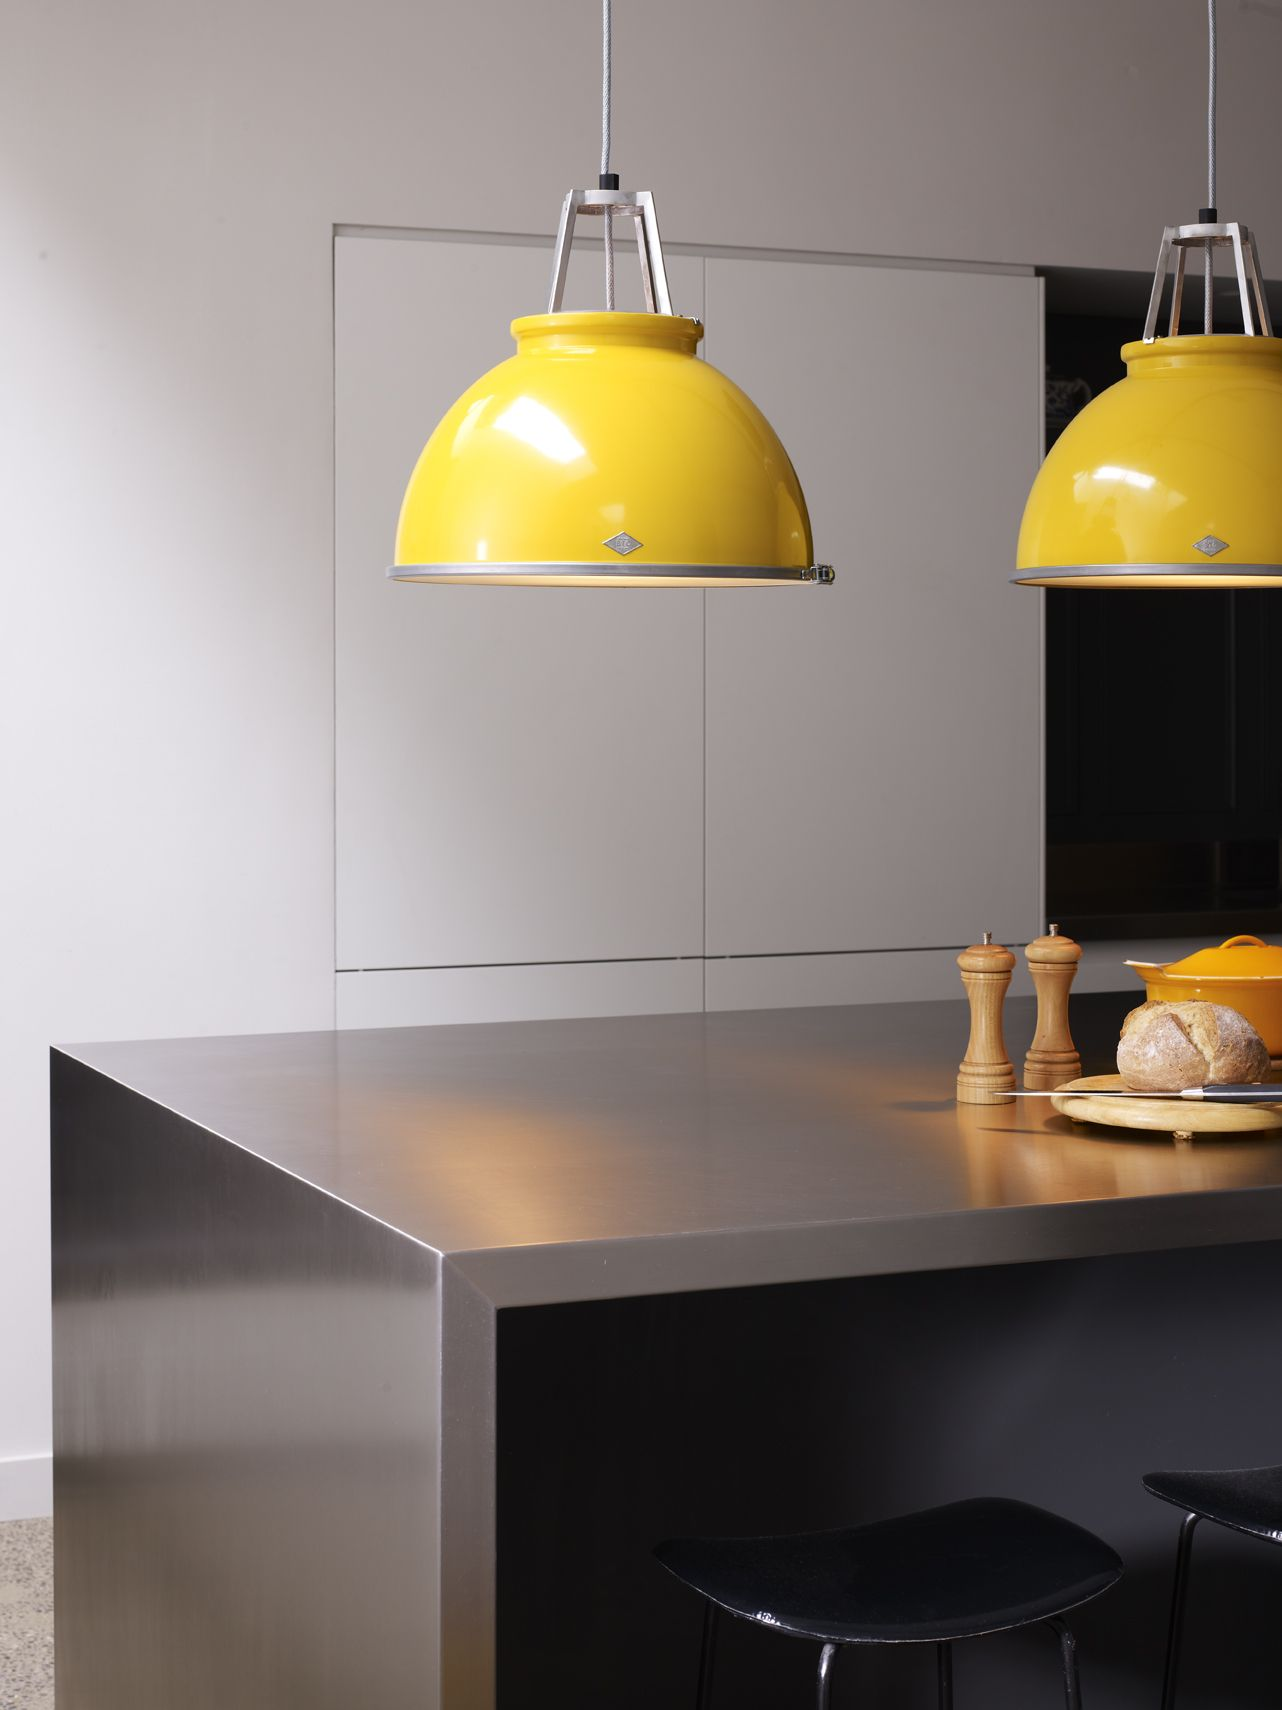 A new vibrant yellow shade for our iconic titan collection light